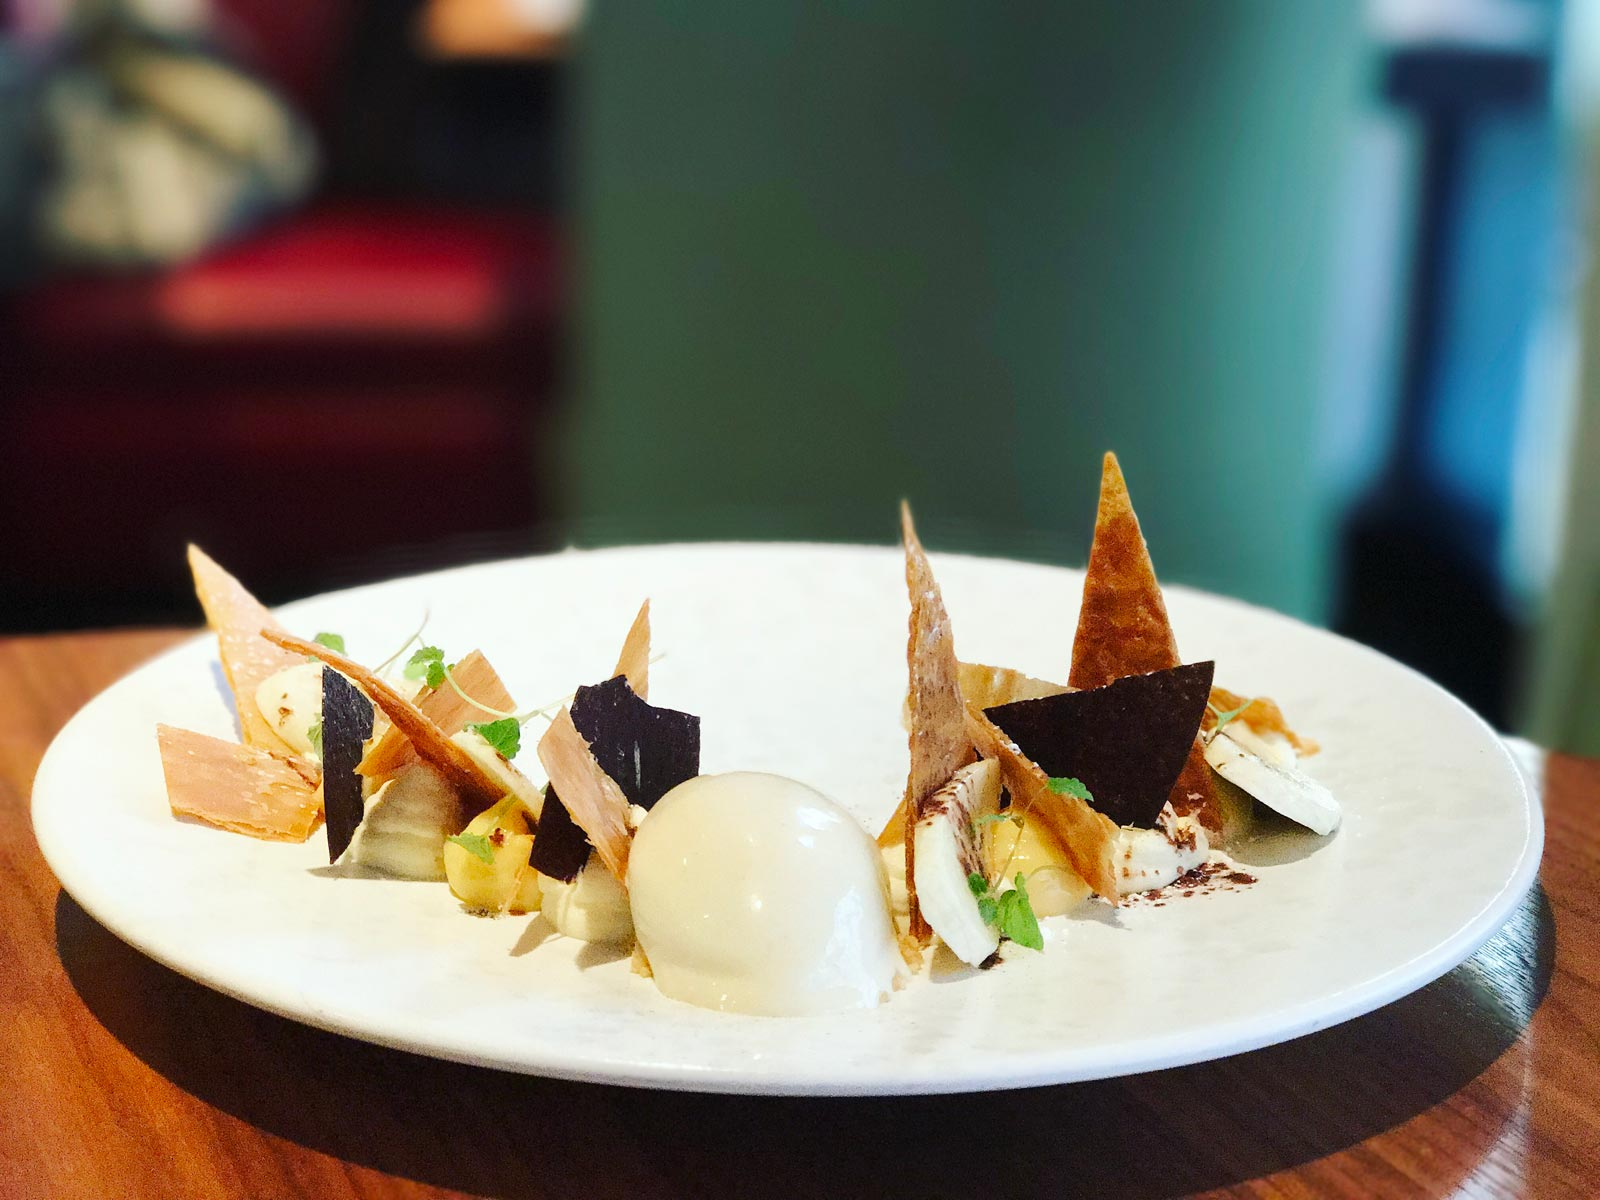 London's PiedàTerre: A Culinary Classic Re-Visited 7